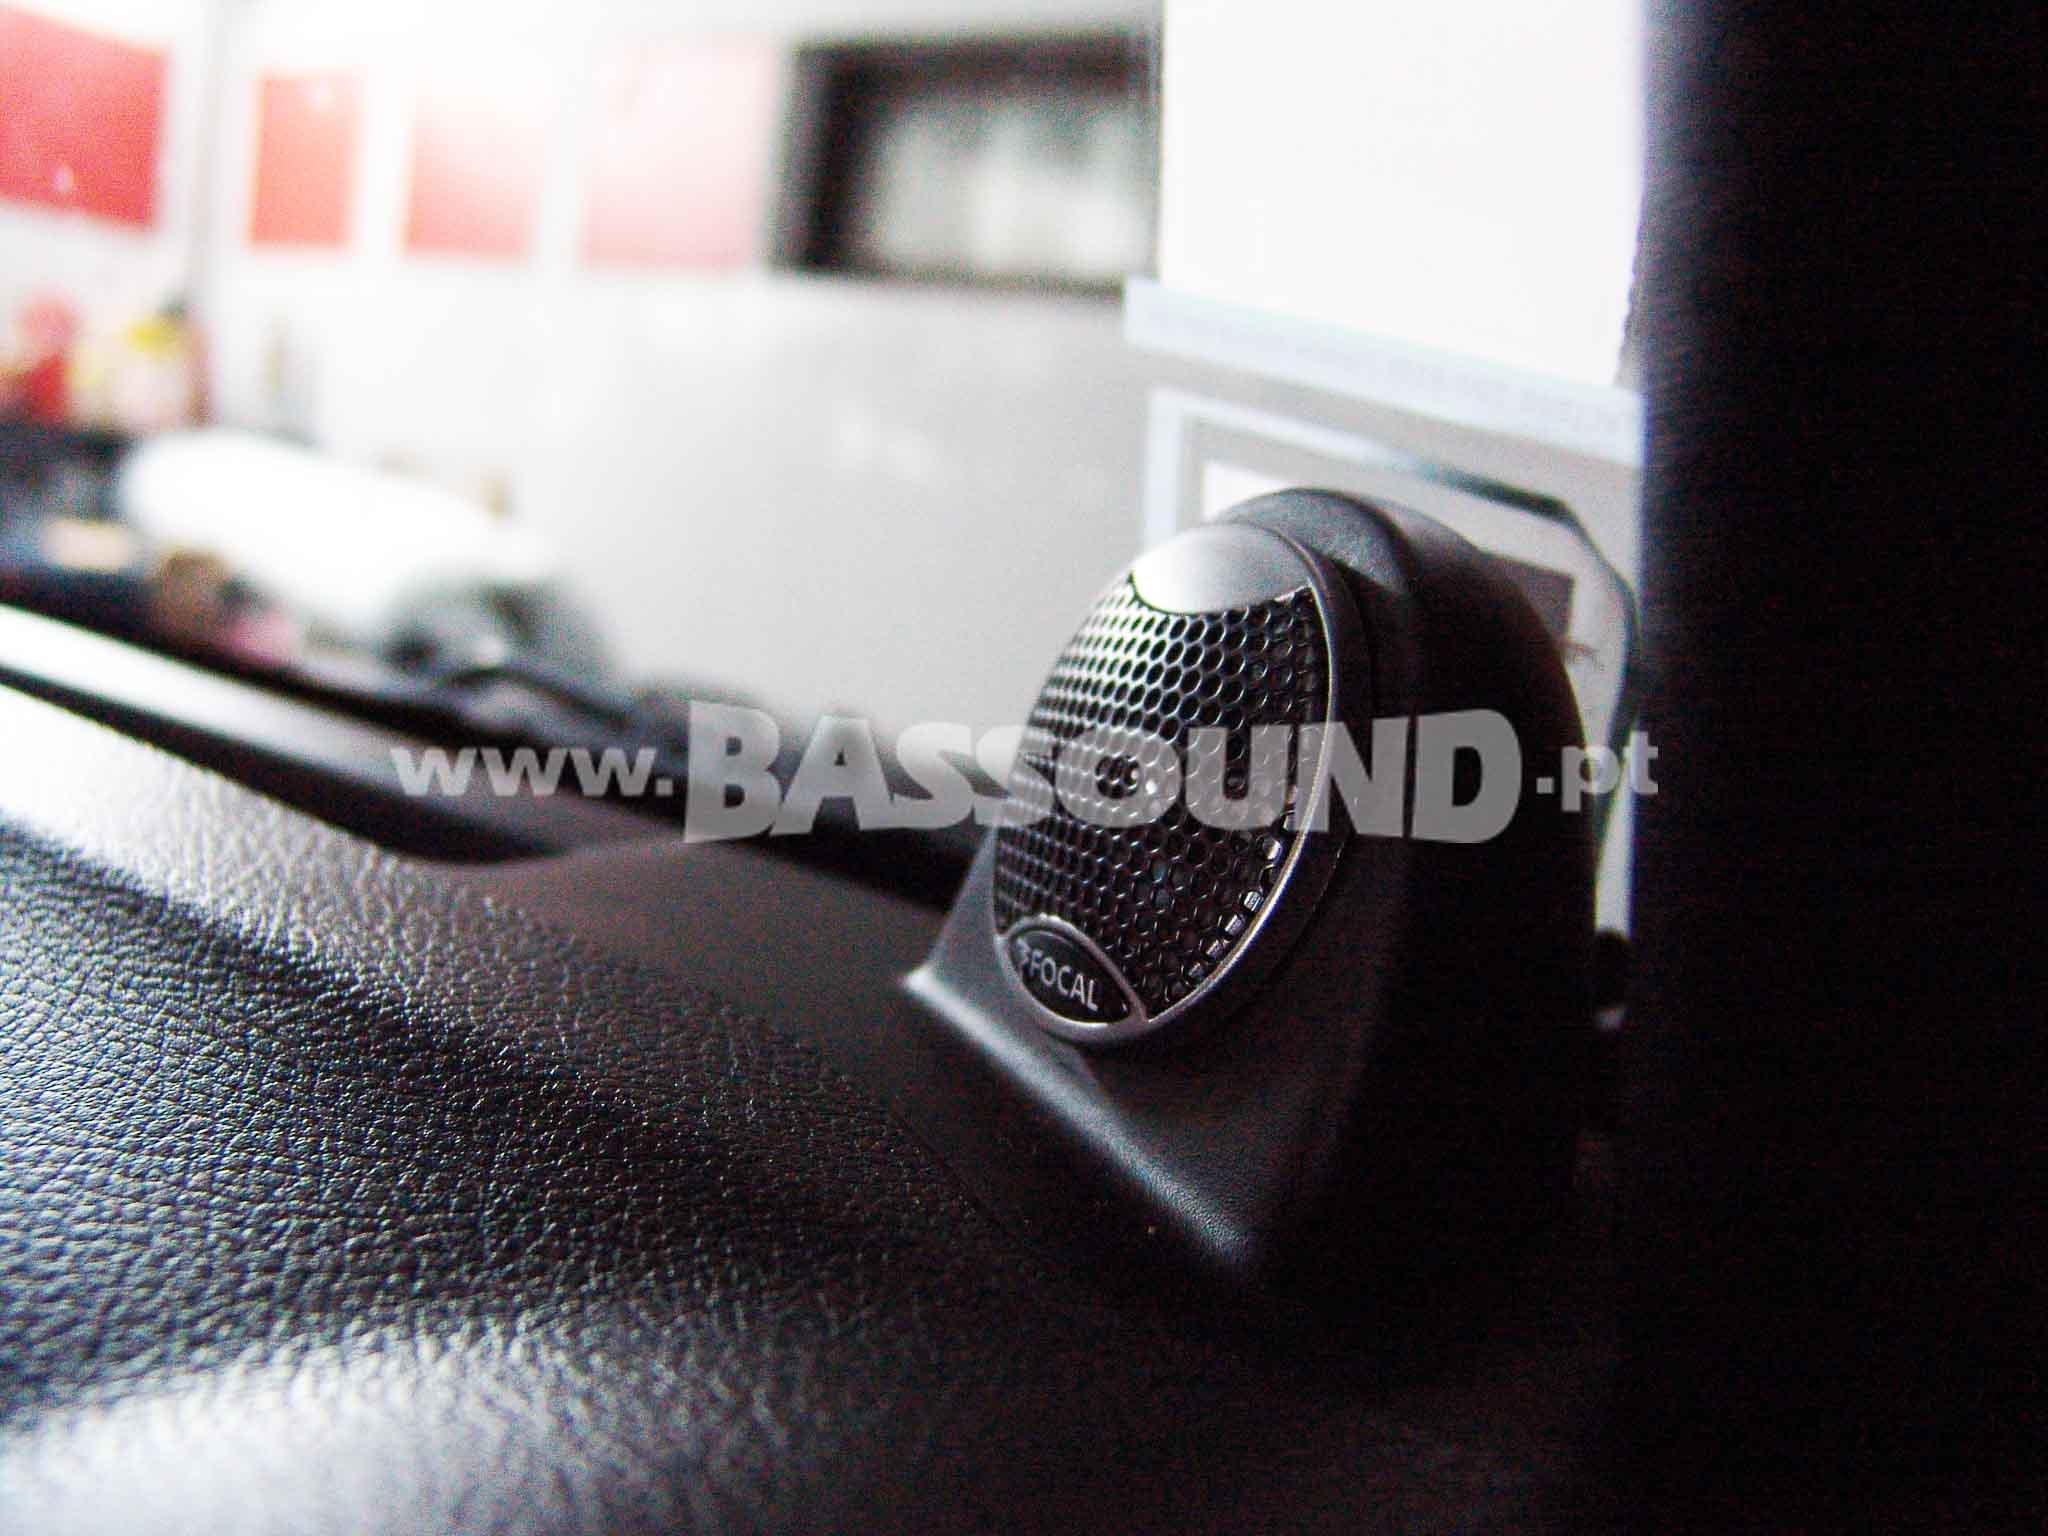 bassound-jeep-wrangler-2011-7